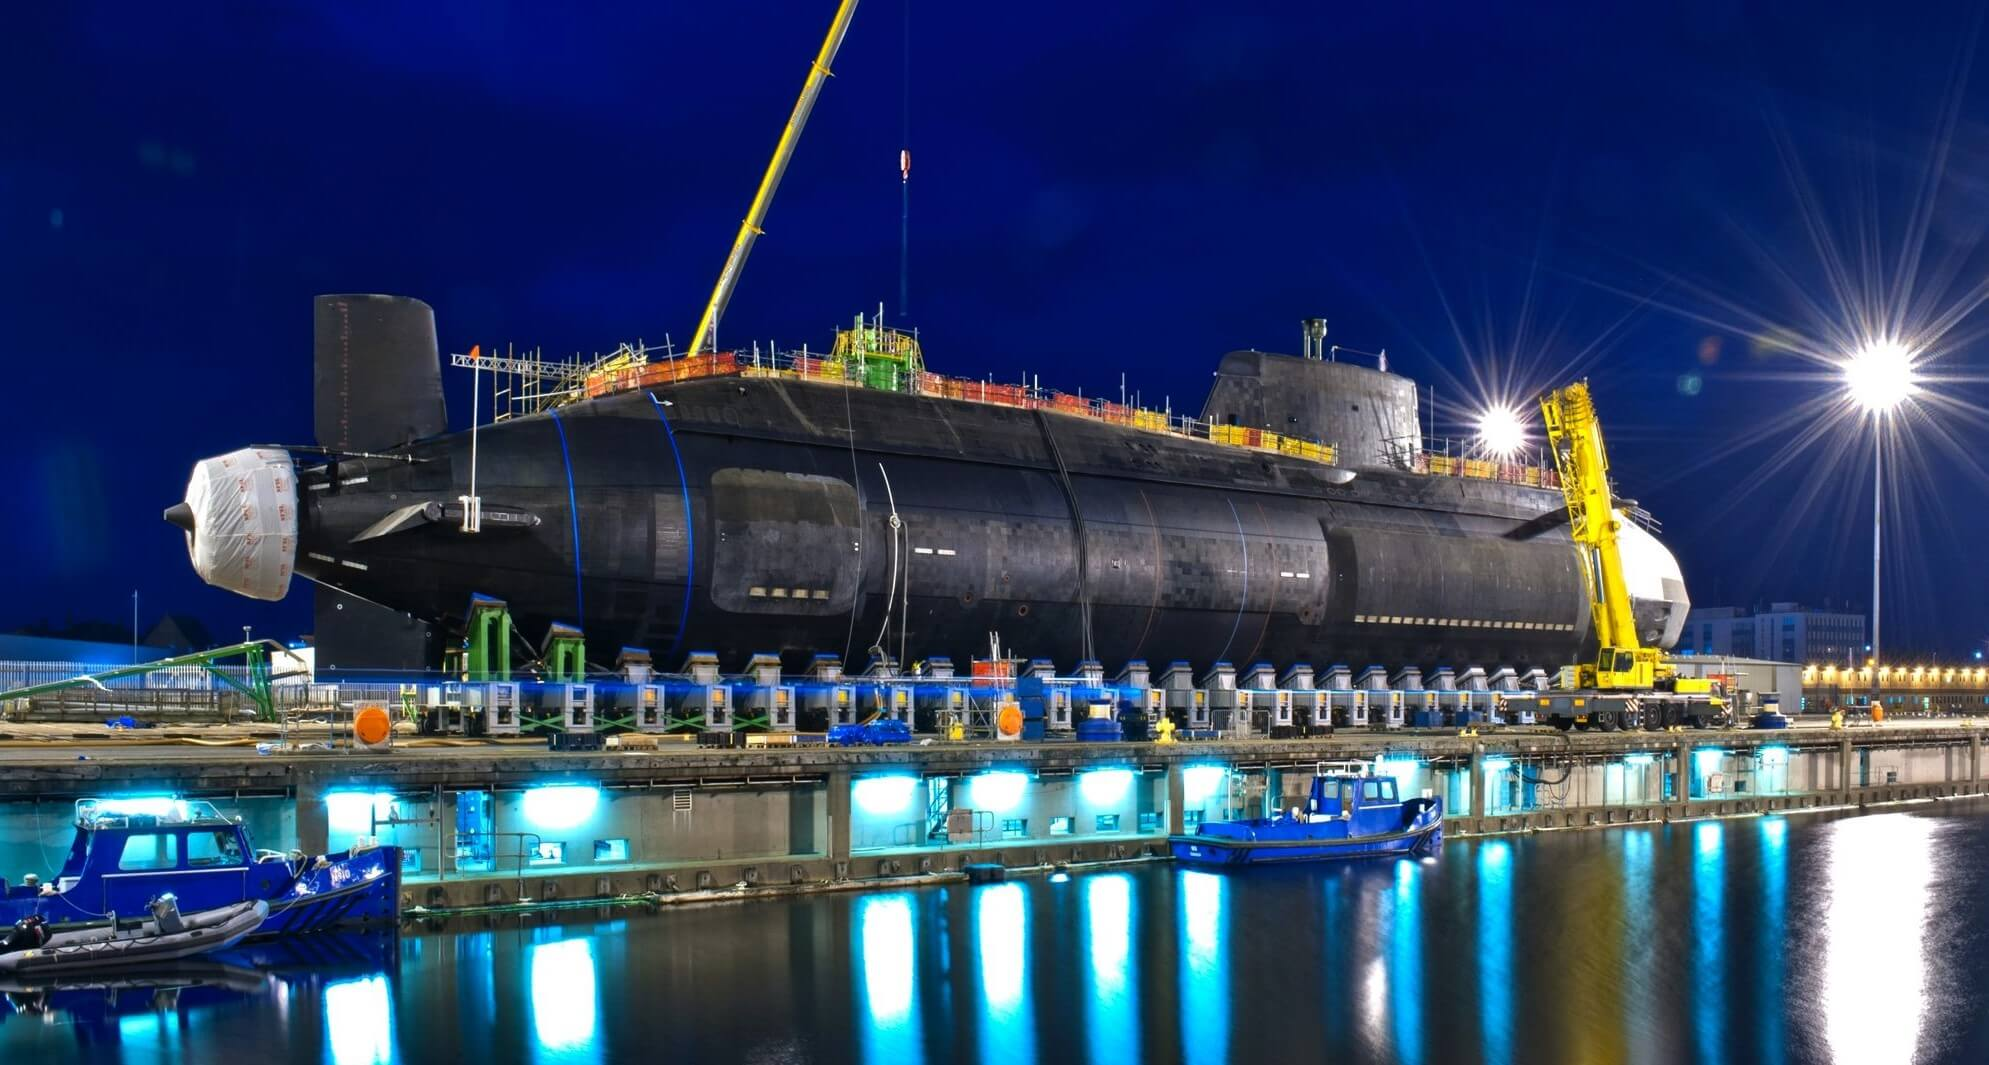 A nuclear submarine is lowered into the water at Barrow-in-Furness on Saturday, 17 May. © Defence Images / Flickr